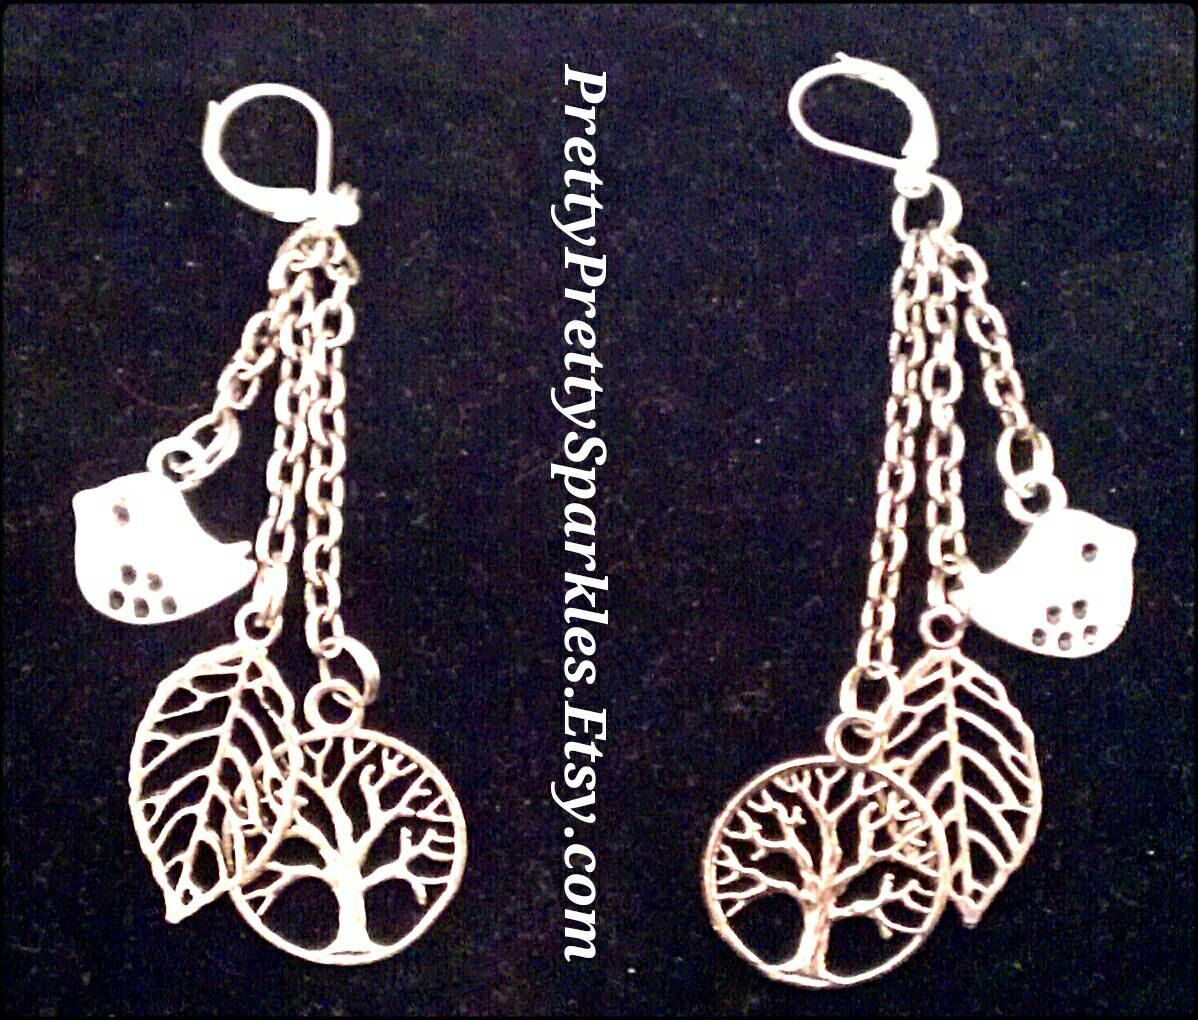 Woodland charm earrings by PrettyPrettySparkles on Etsy #PrettyPrettySparkles  PrettyPrettySparkles.Etsy.com